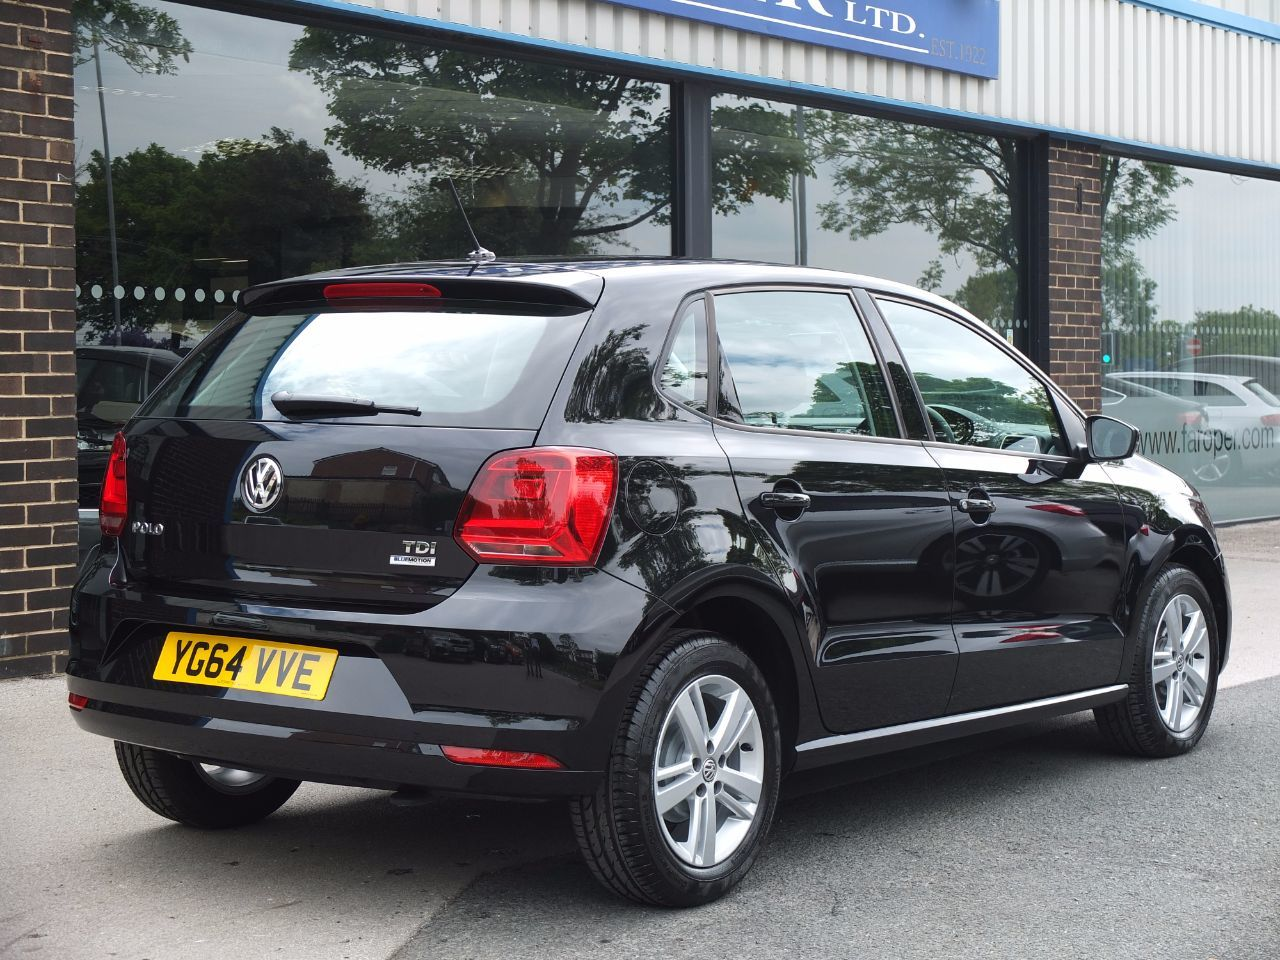 Volkswagen Polo 1.4 TDI Bluemotion Tech SE 5 door Facelift Hatchback Diesel Deep Black Metallic